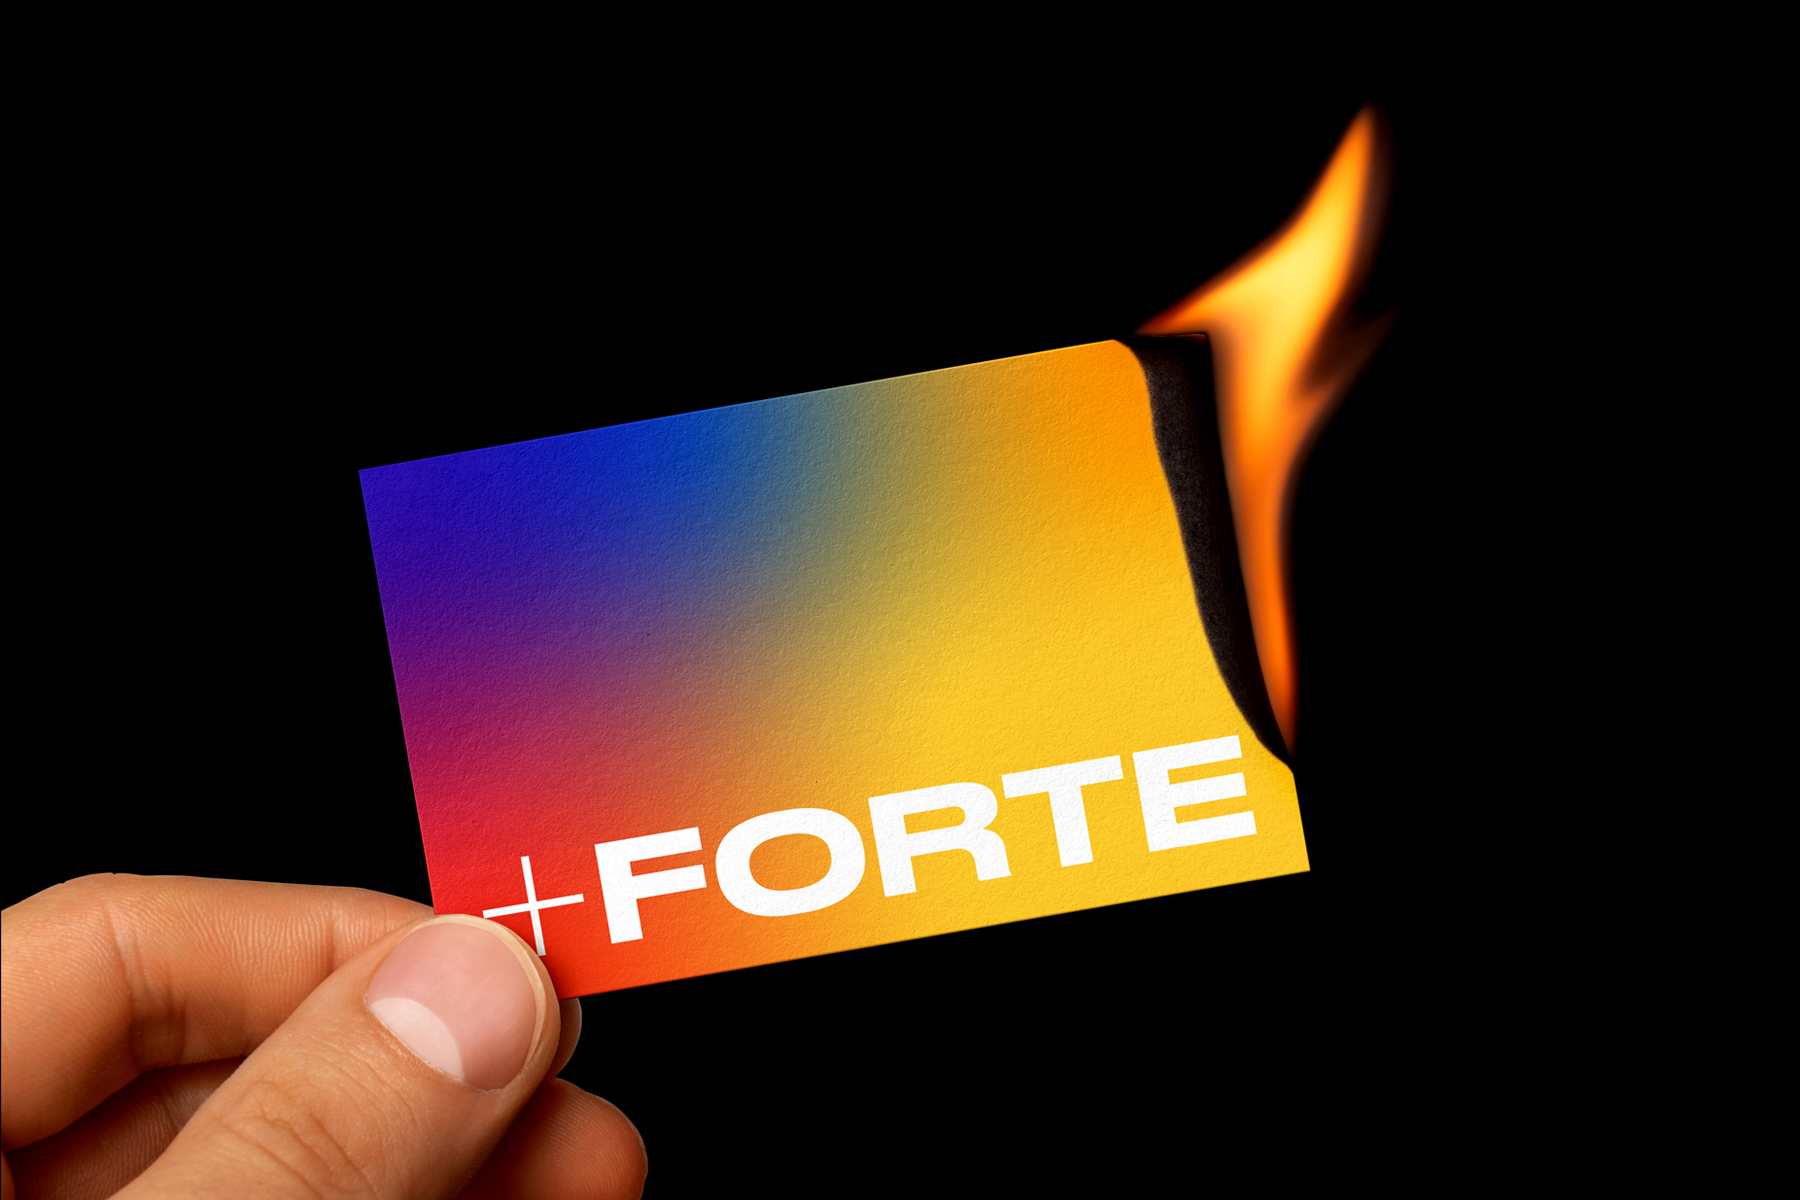 Student Conceptual Branding for +Forte